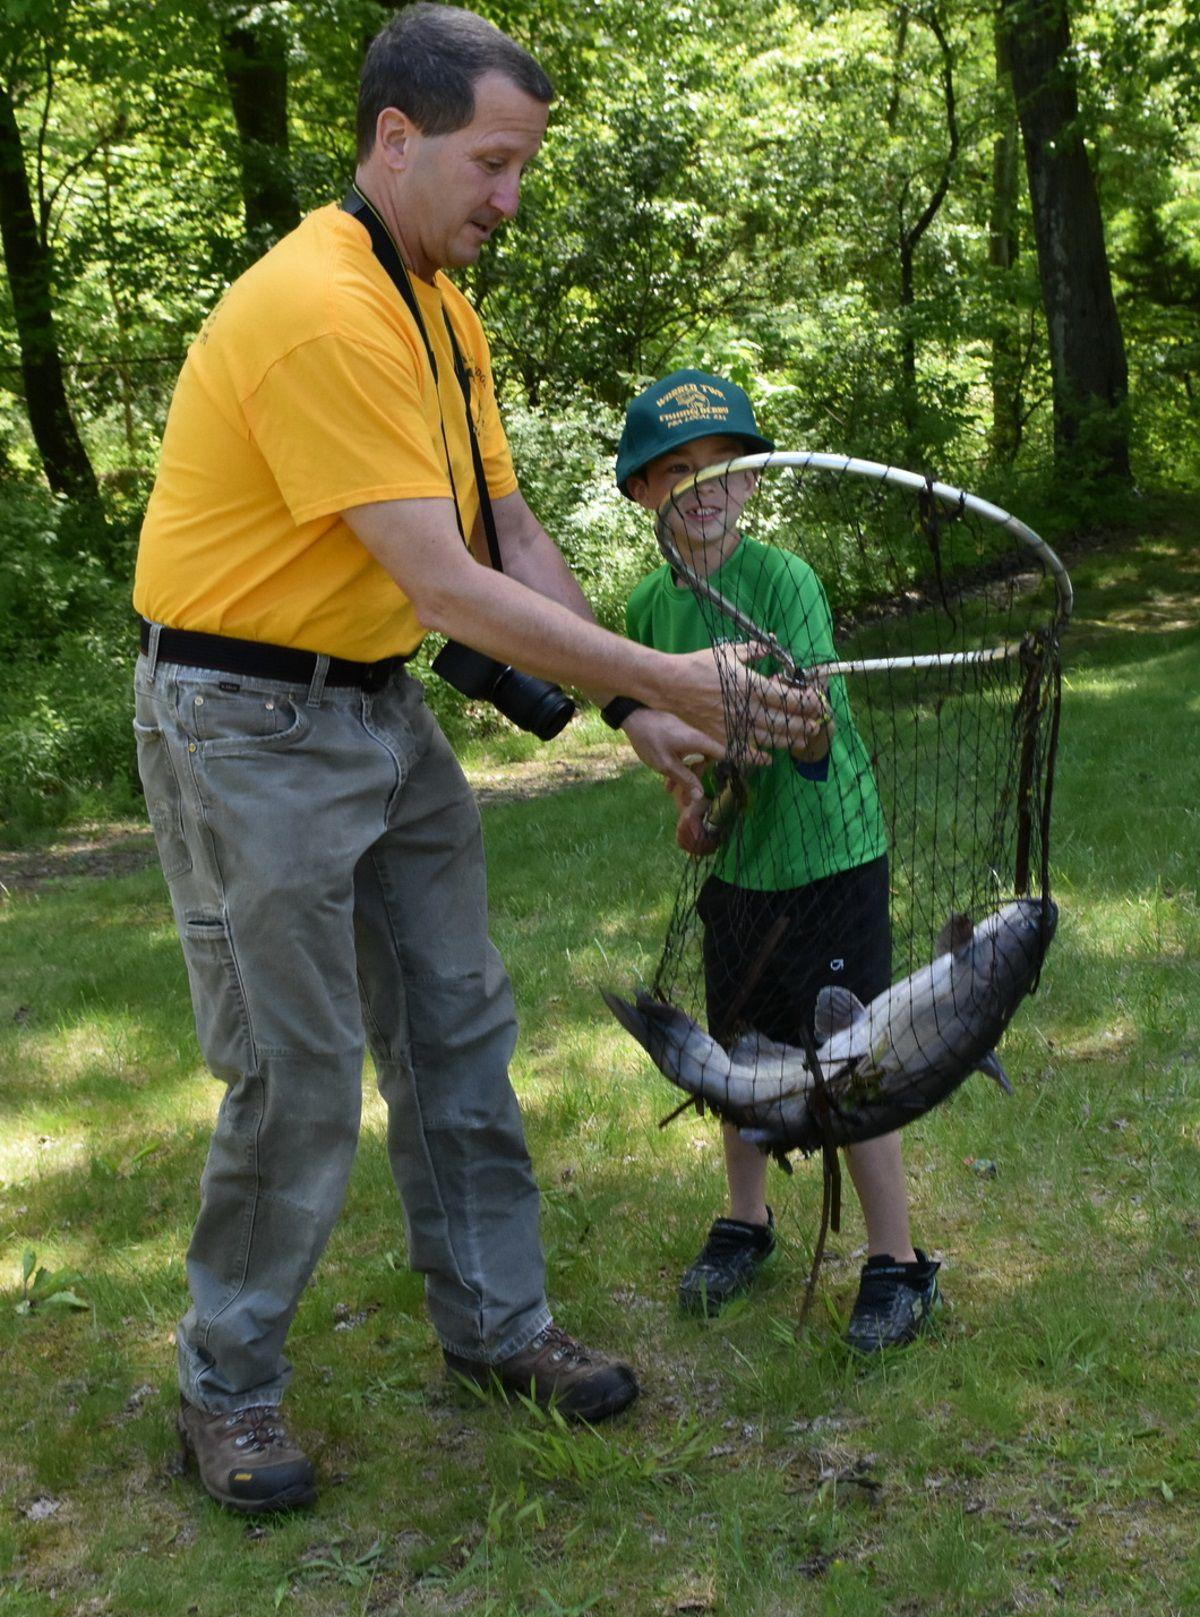 Big Catch For 8-year-old